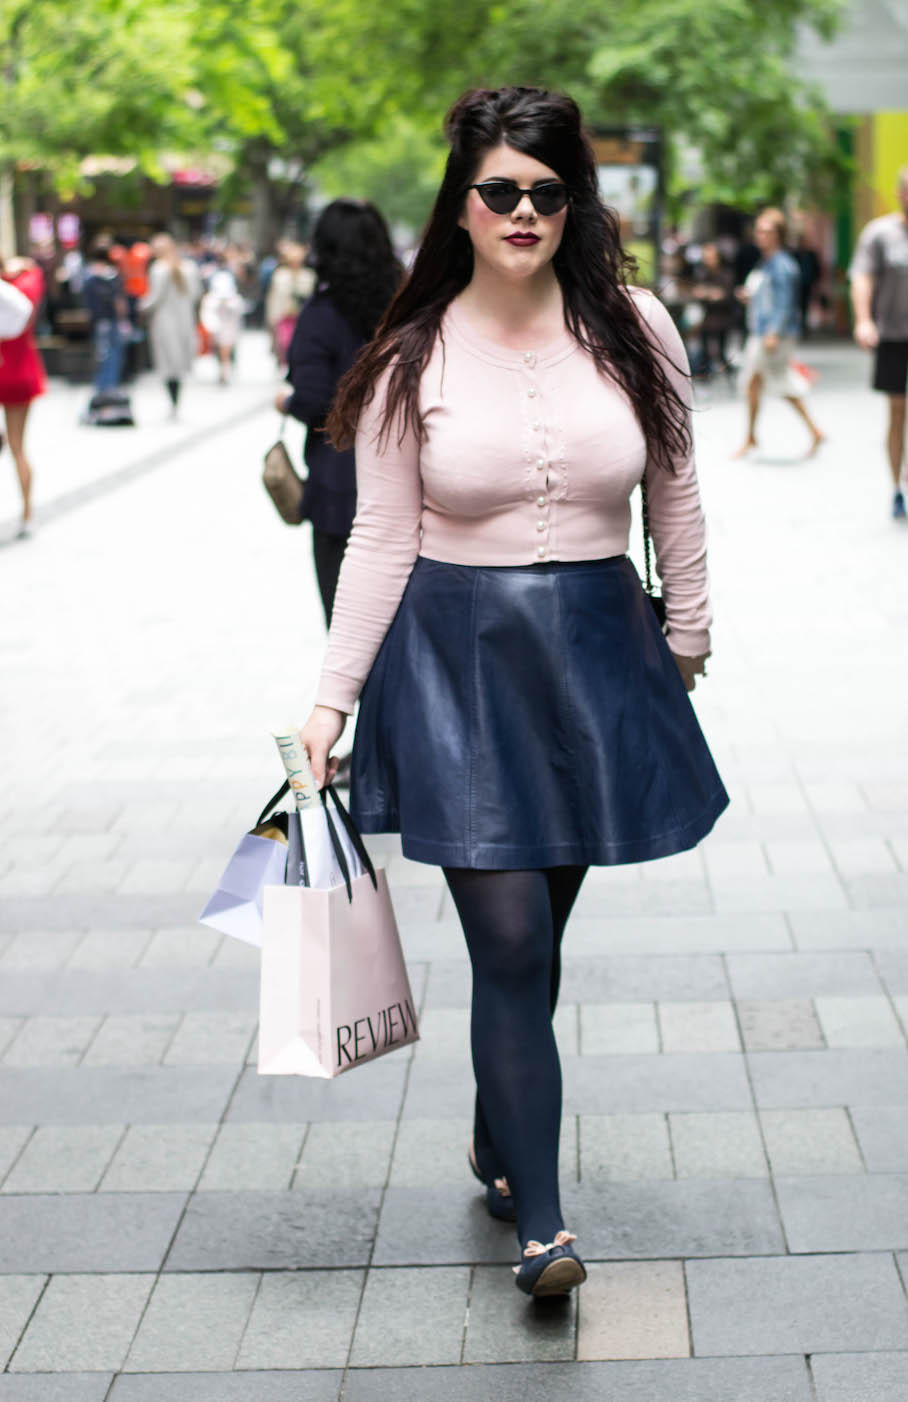 "NSW: Alexandra Dockrill, teacher, Pitt St. ""My style is girly with a touch of vintage or edge."" Photo: Alice Scriberras"